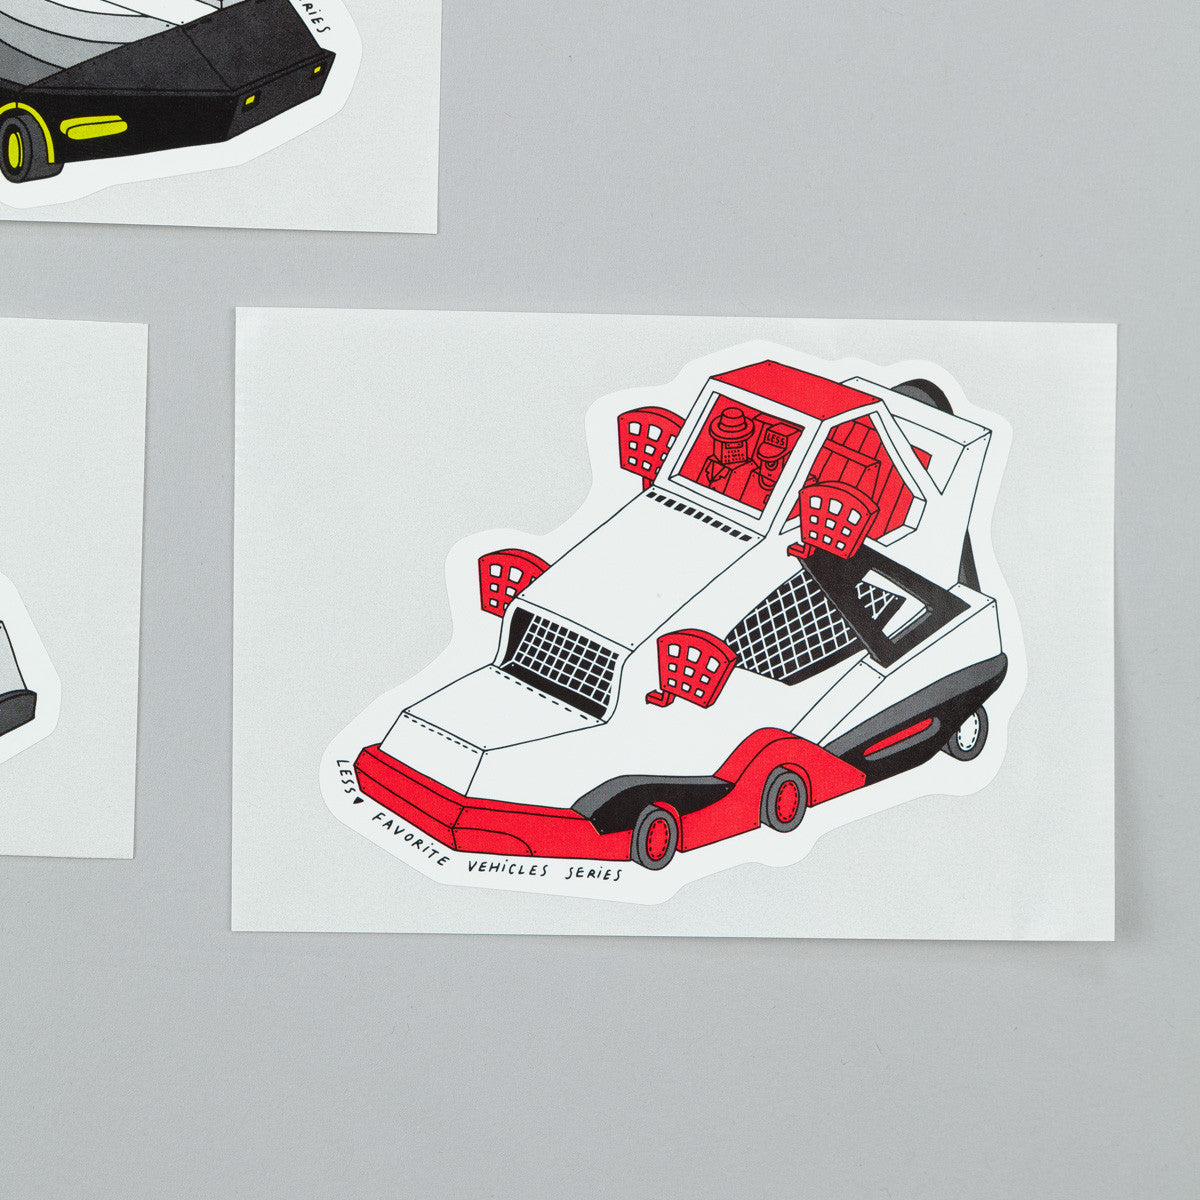 Less x Ghica Popa Favourite Vehicles Series Sticker Pack